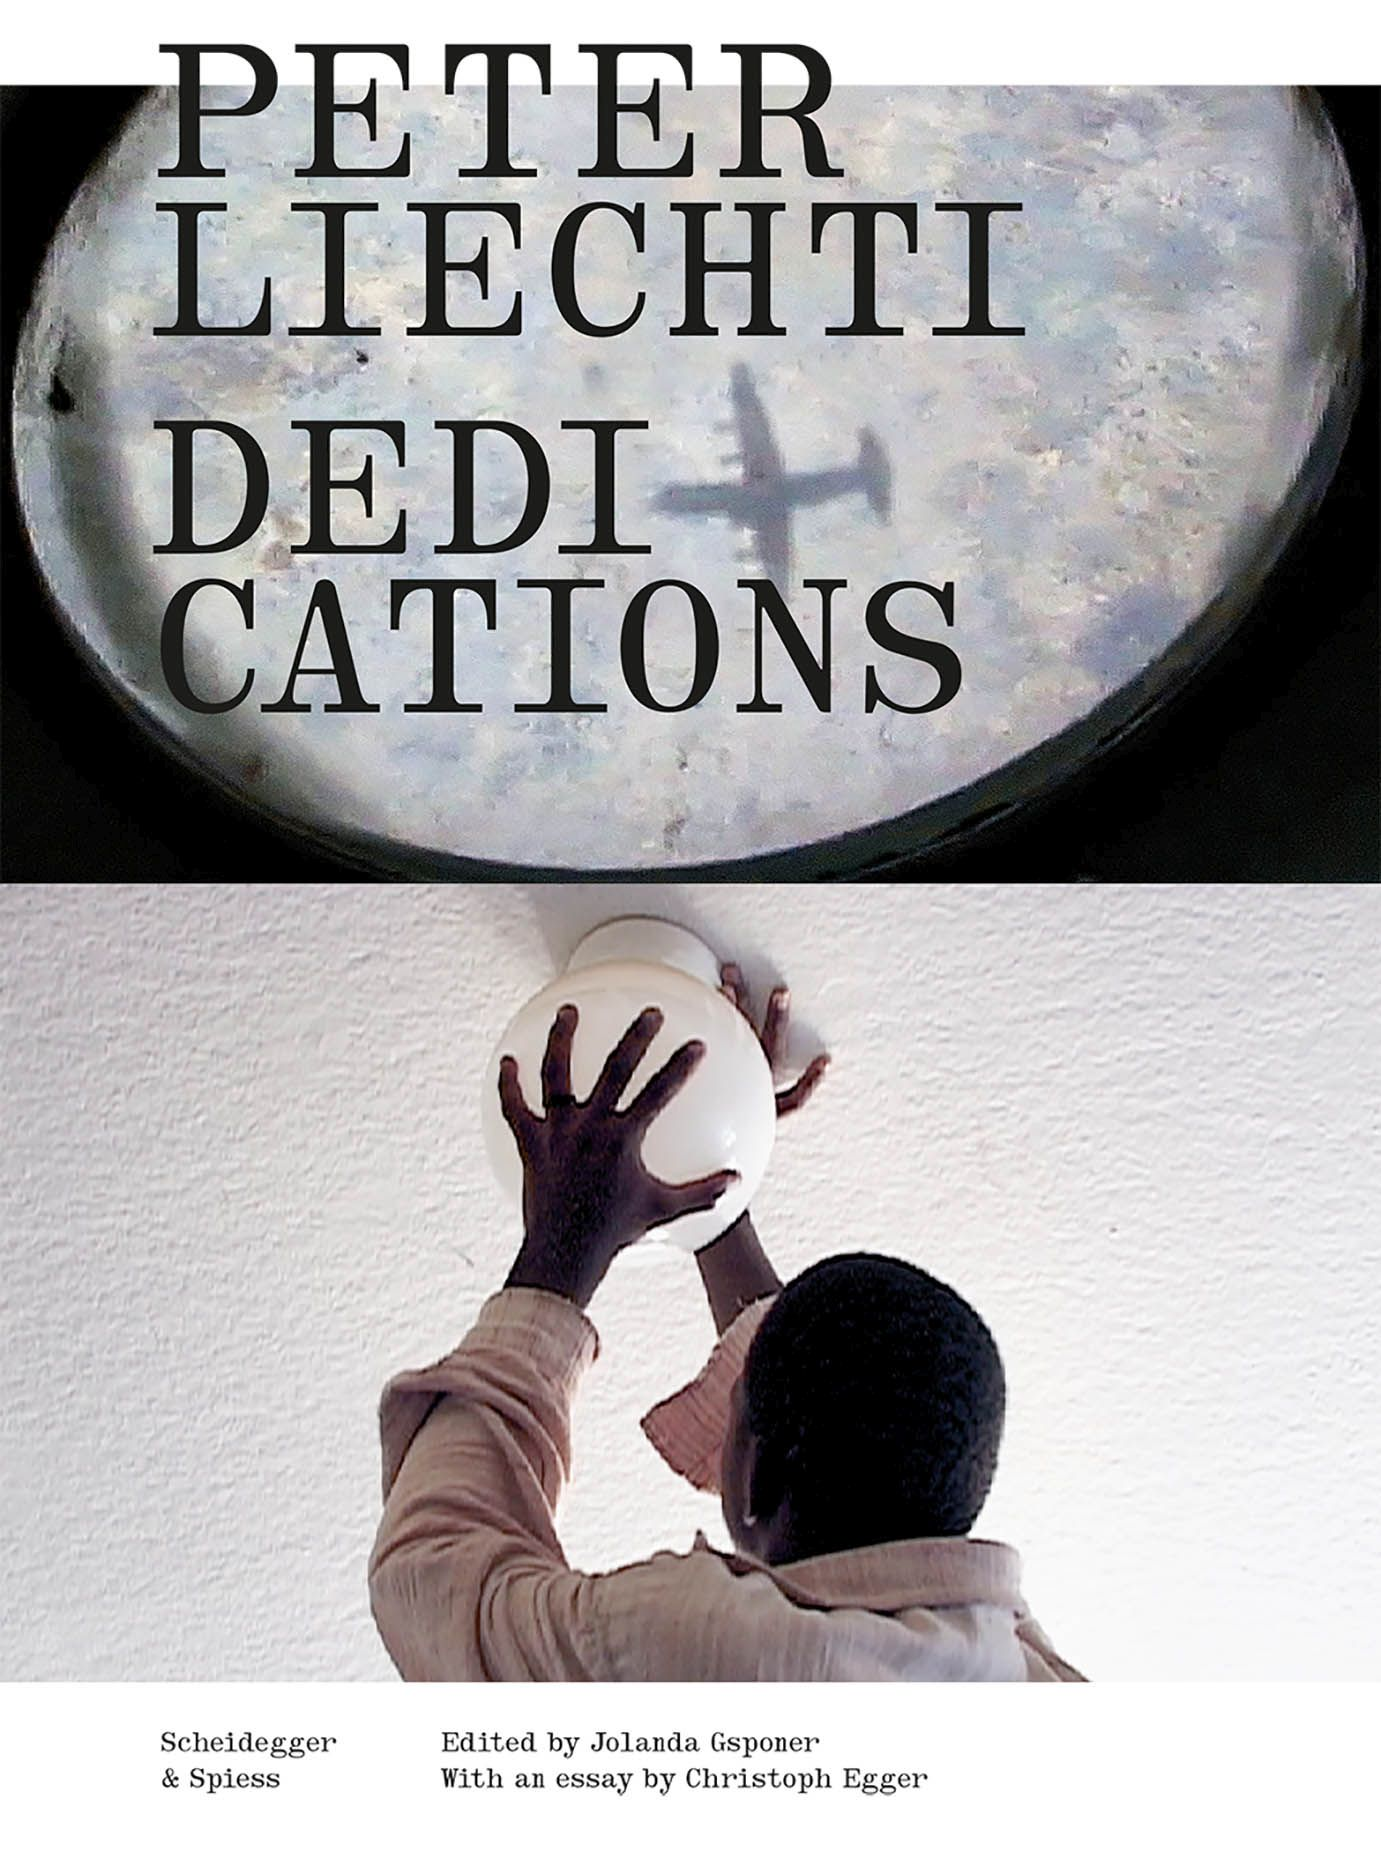 Peter Liechti - Dedications